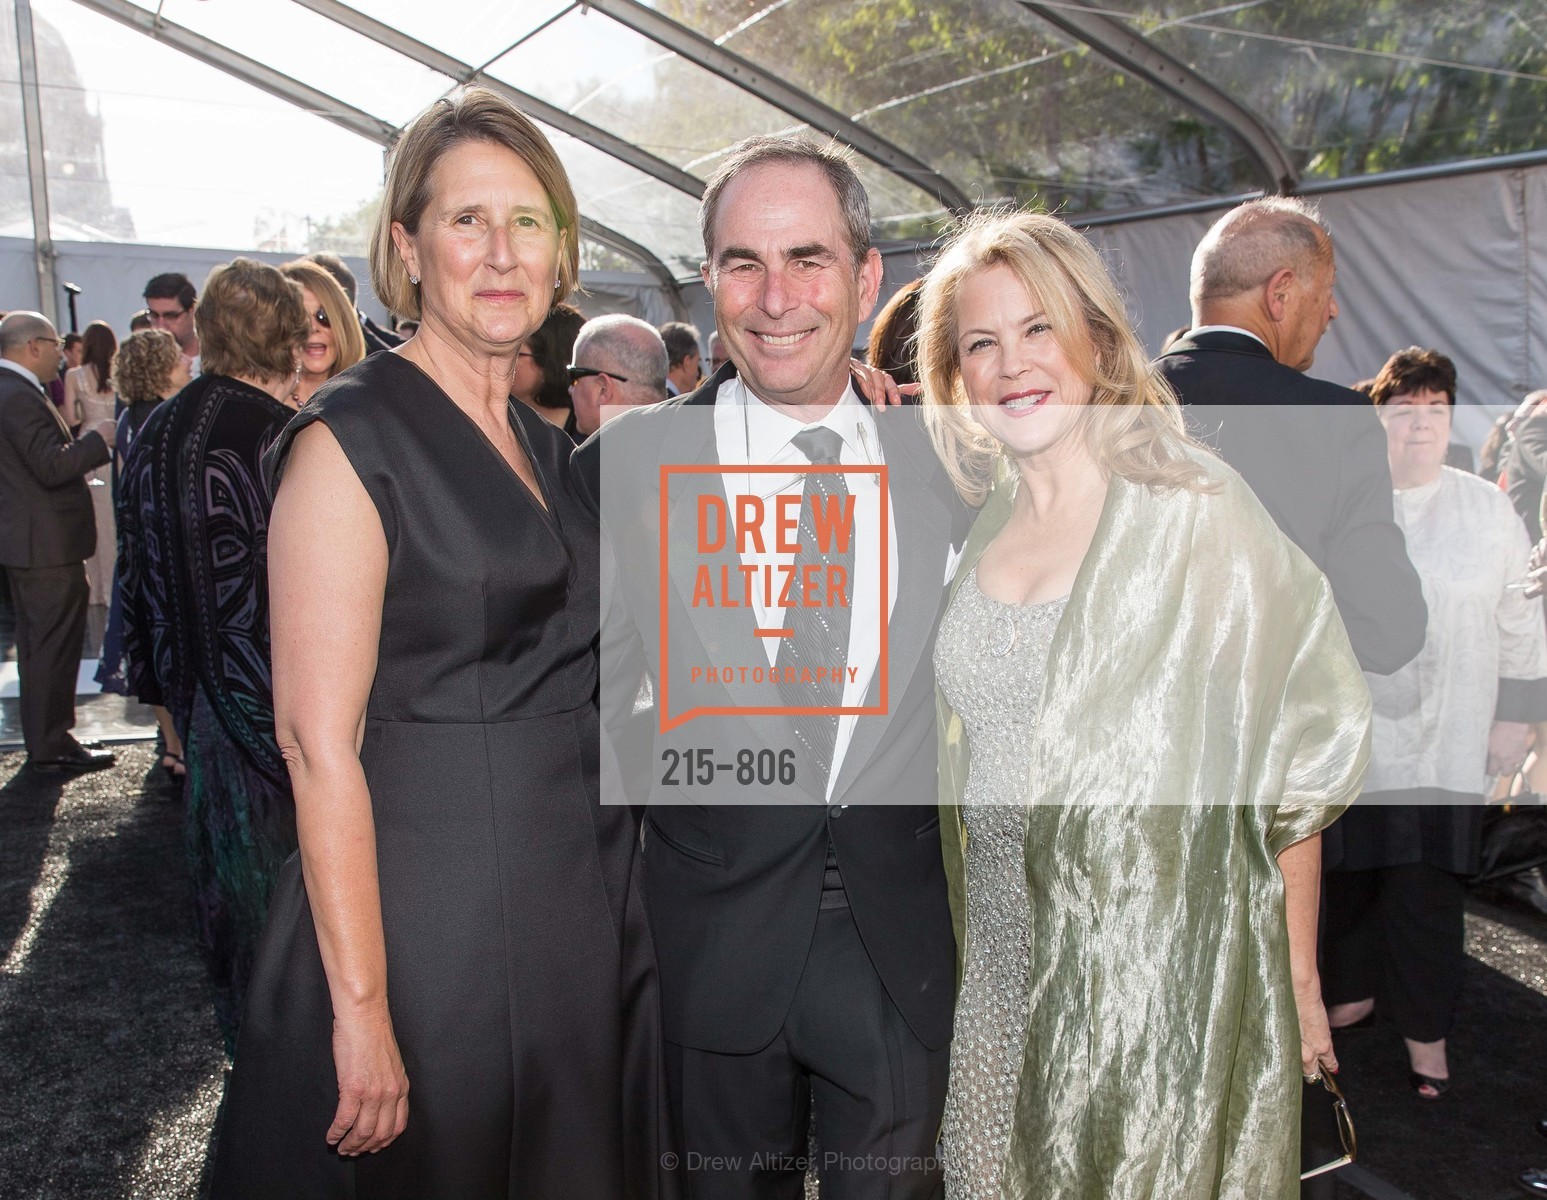 Prisca Geeslin, Todd Werby, Nonie Greene, A.C.T. Gala Come Get Stranded, US, April 26th, 2015,Drew Altizer, Drew Altizer Photography, full-service agency, private events, San Francisco photographer, photographer california